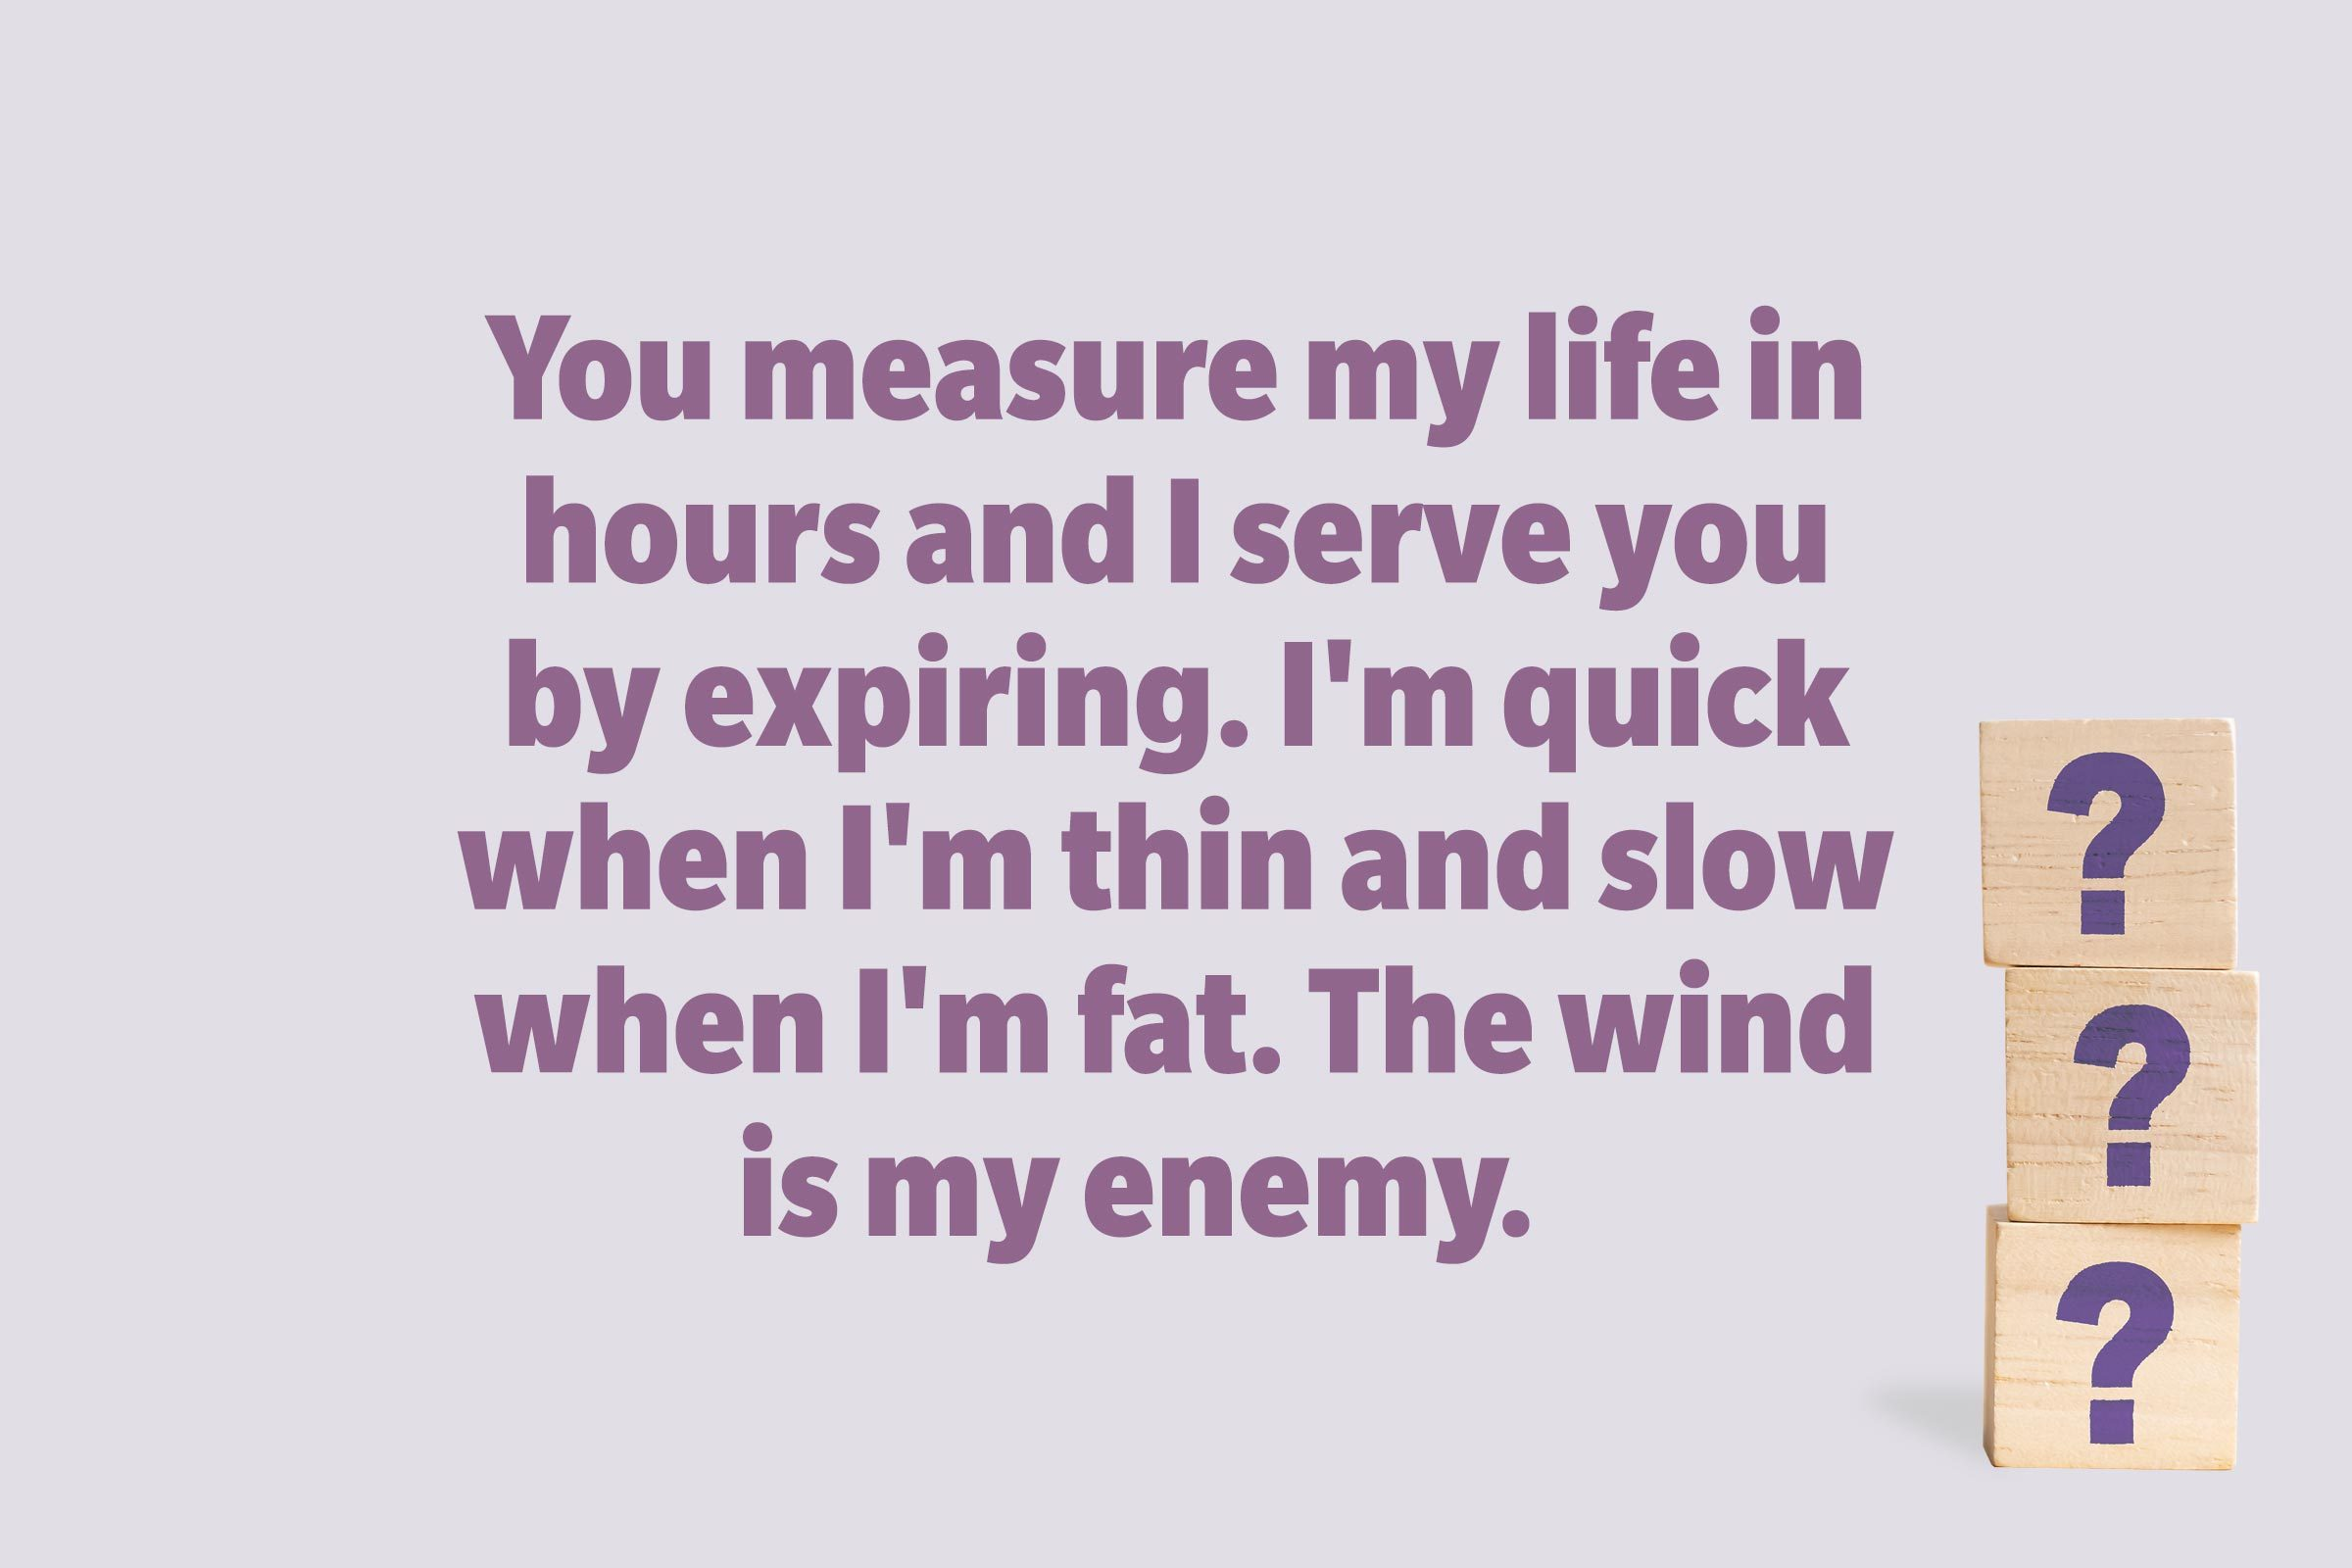 You measure my life in hours and I serve you by expiring. I'm quick when I'm thin and slow when I'm fat. The wind is my enemy.